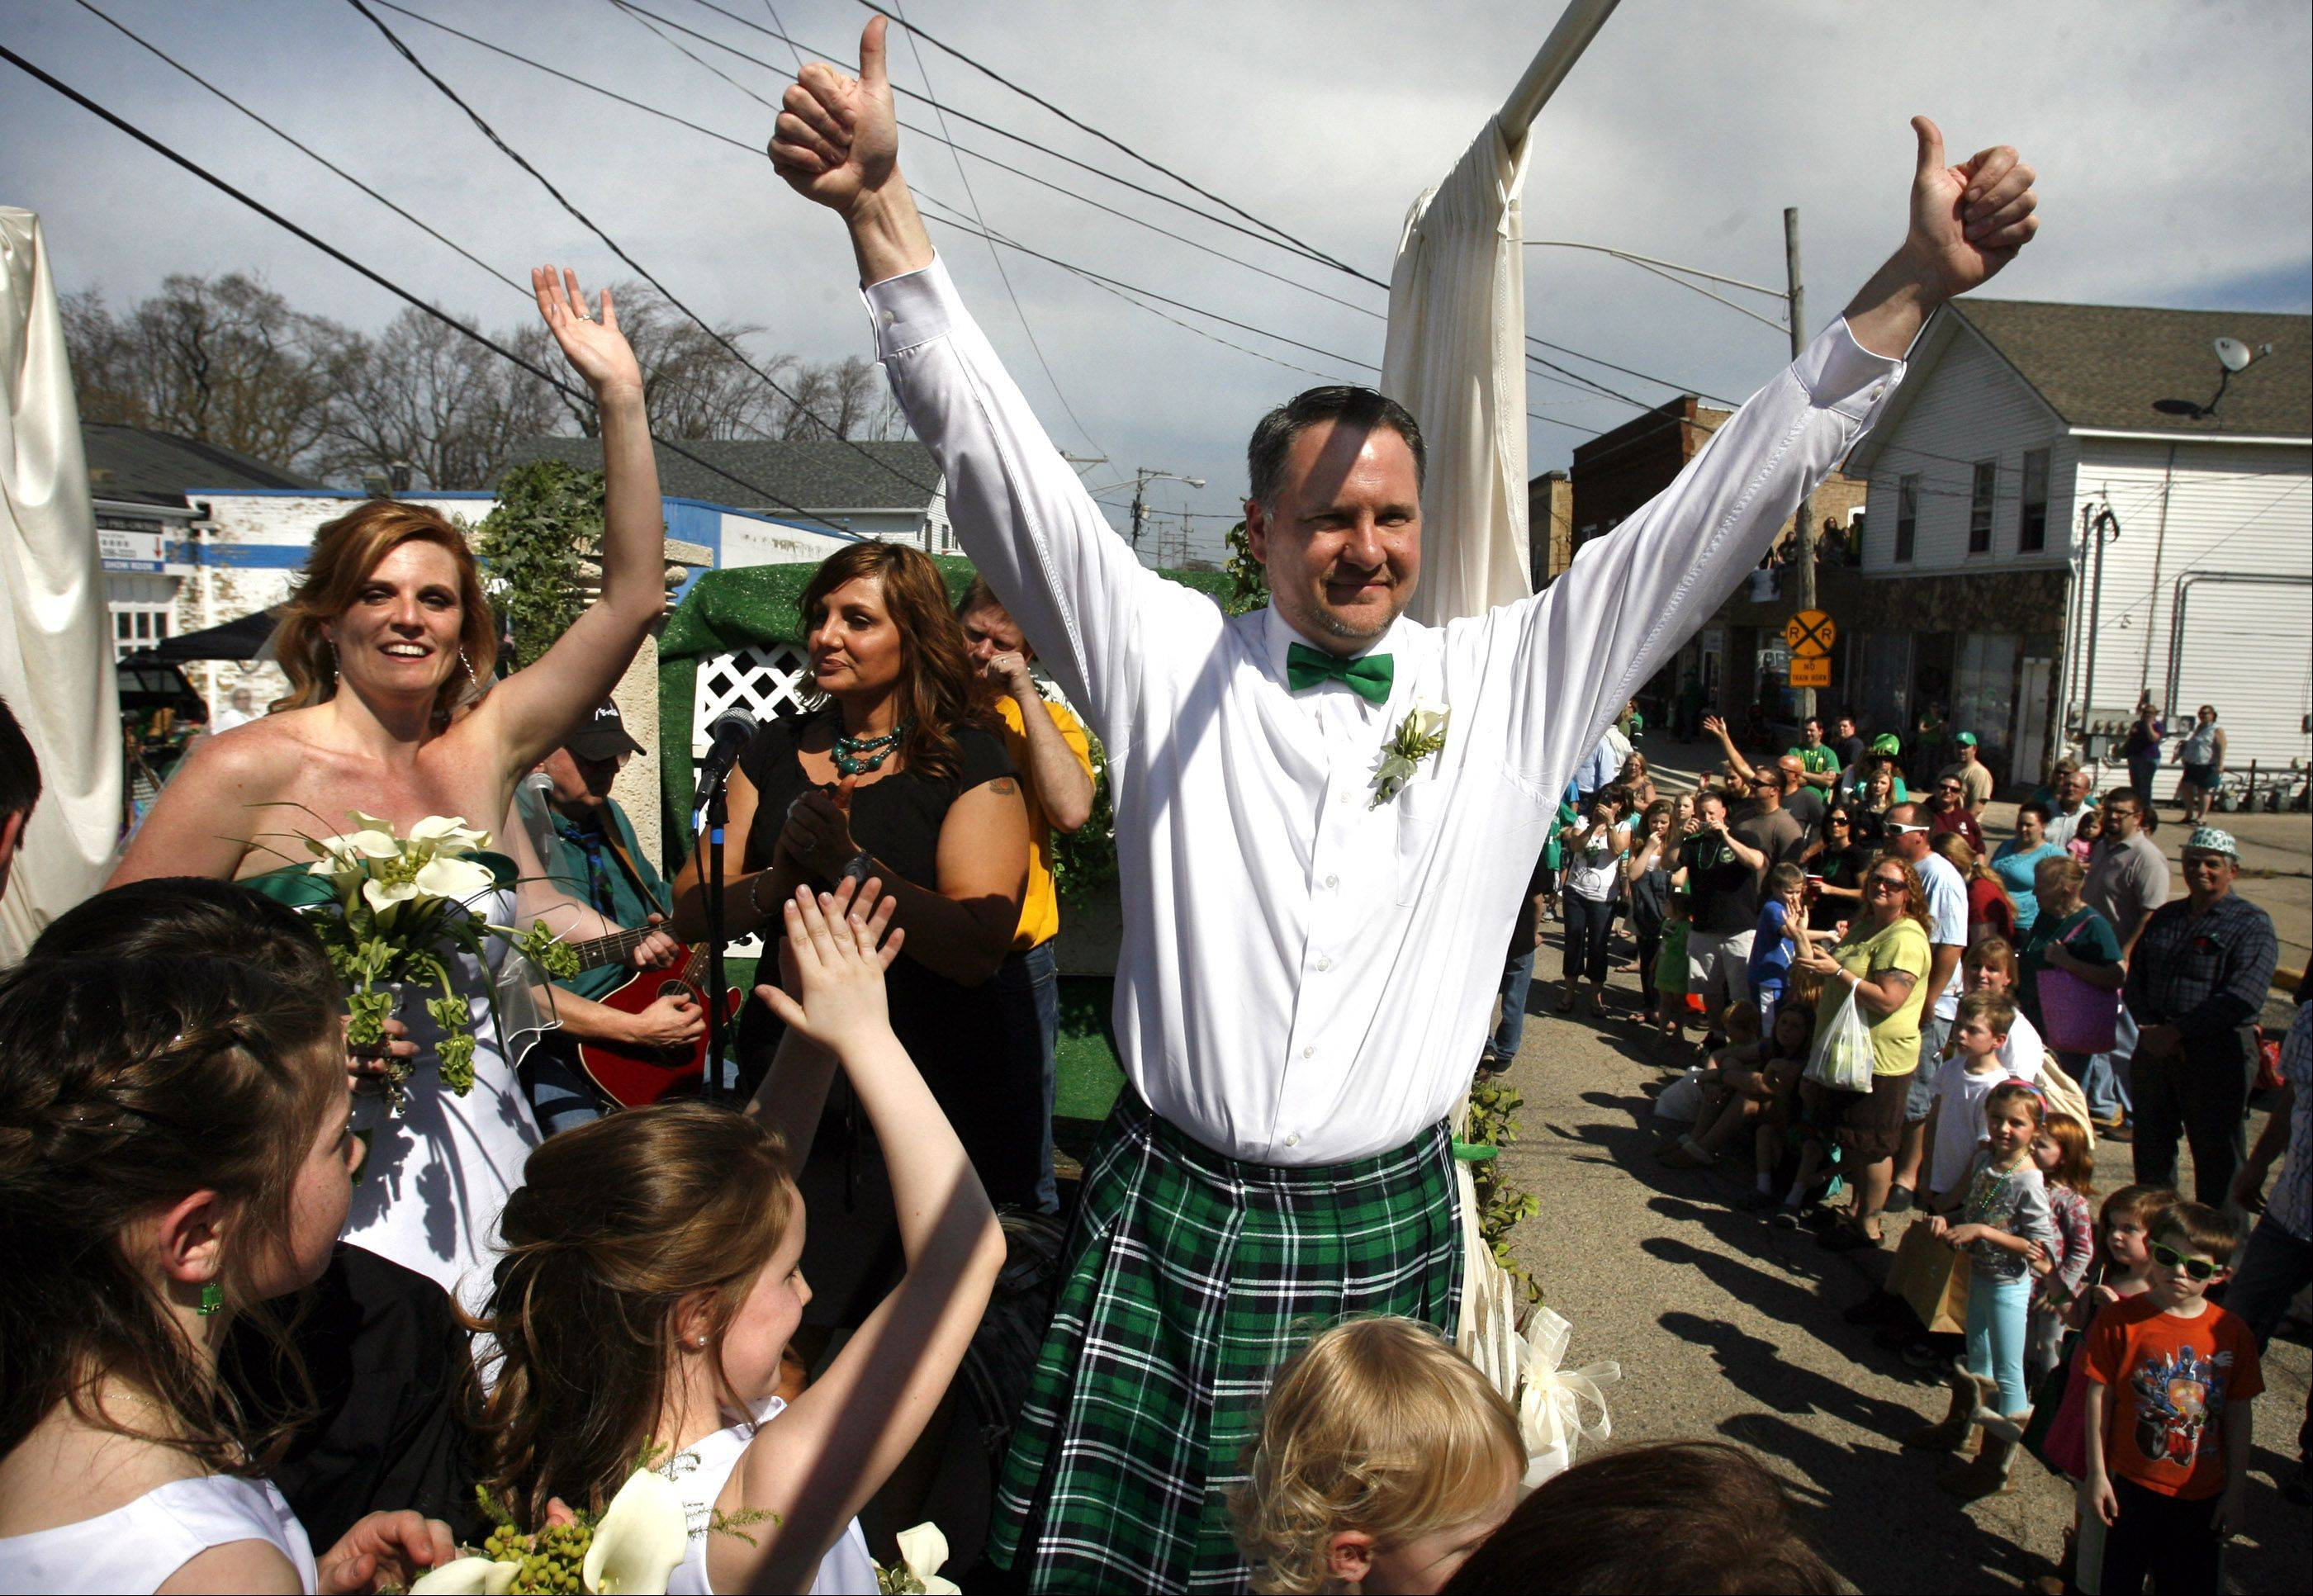 Tara Teschky and Paul Quinn of Libertyville wave to the crowd after getting married on a float during the Lake Villa St. Patrick's Day parade Saturday.